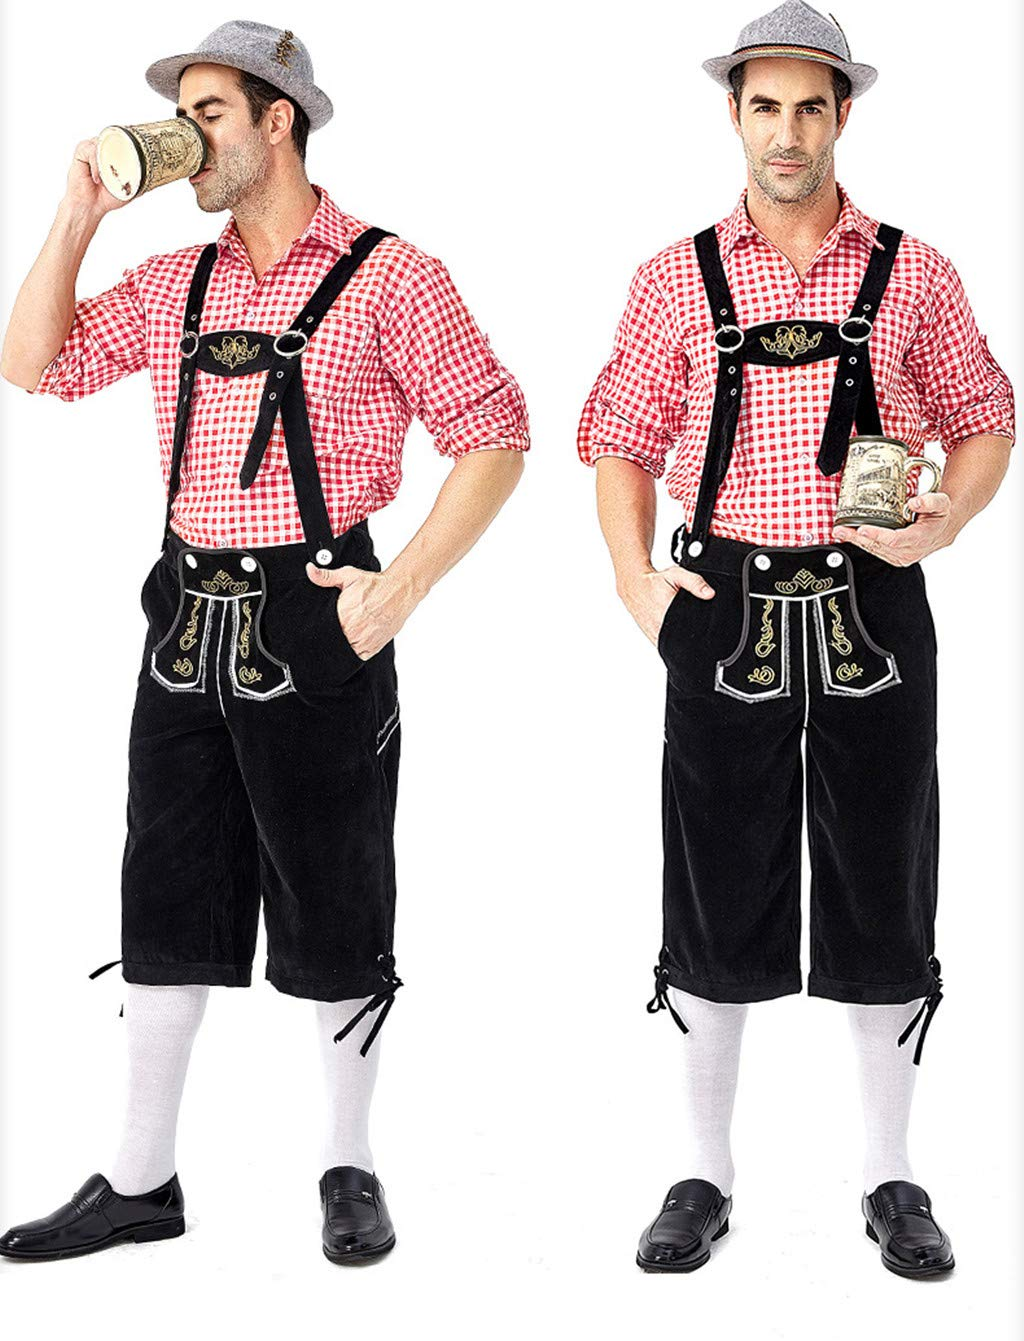 KELOVE Men's German Bavarian Oktoberfest Classic Costume for Carnival,German Beer Festival Costume by KELOVE